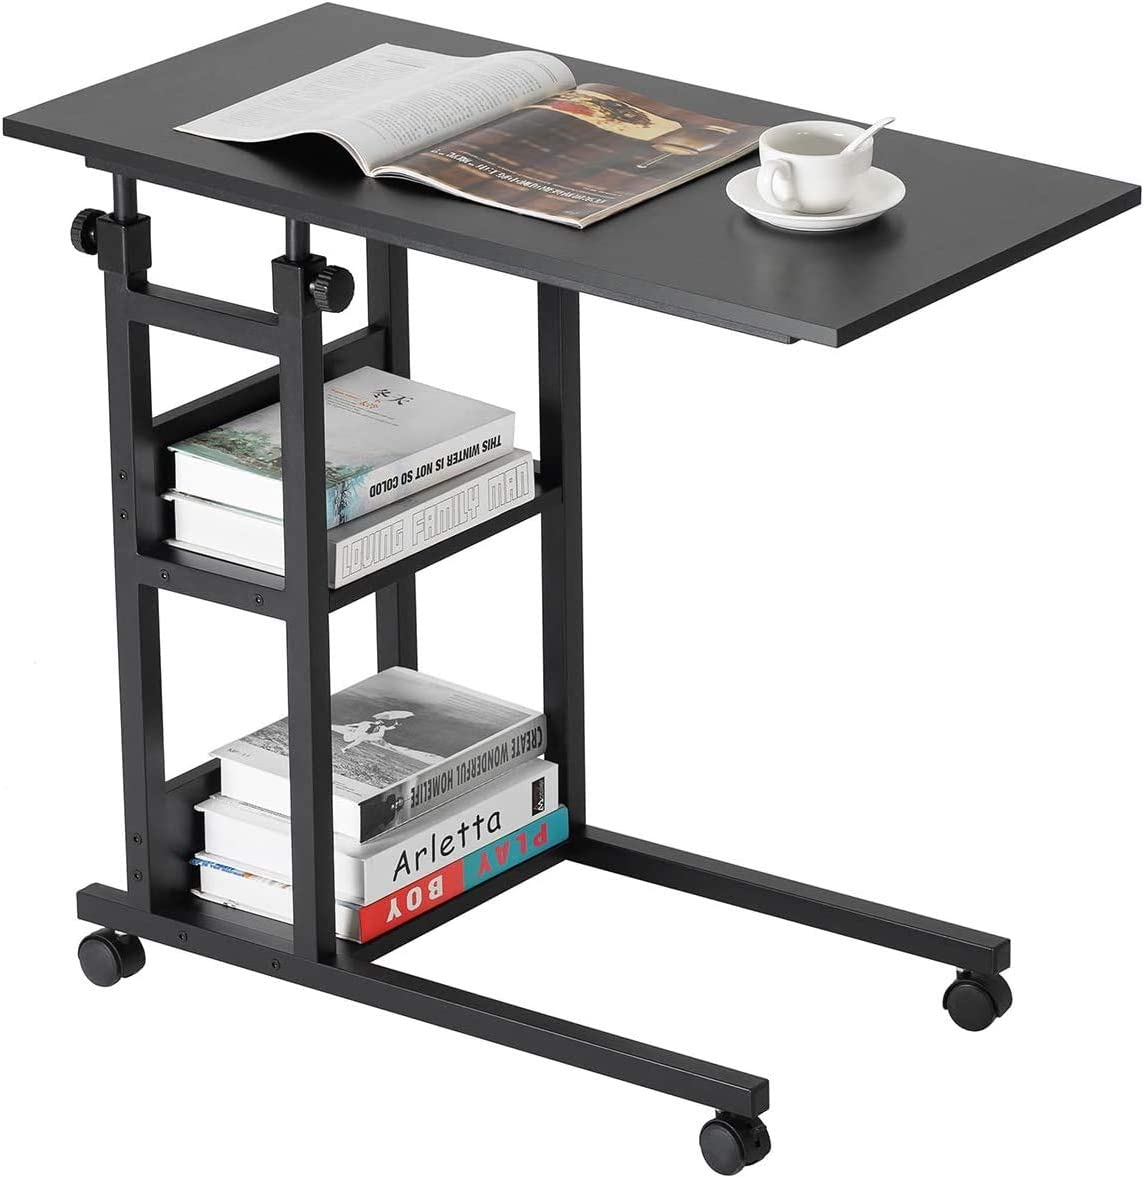 BAOLEJIA Home Office Desk Sofa Side Computer Table with Wheels, Adjustable C-Shape Snack Mobile End Table with 3-Tier Storage Shelves for Sofa Couch, Bed Side Table for Coffee Laptop Tablet - Black